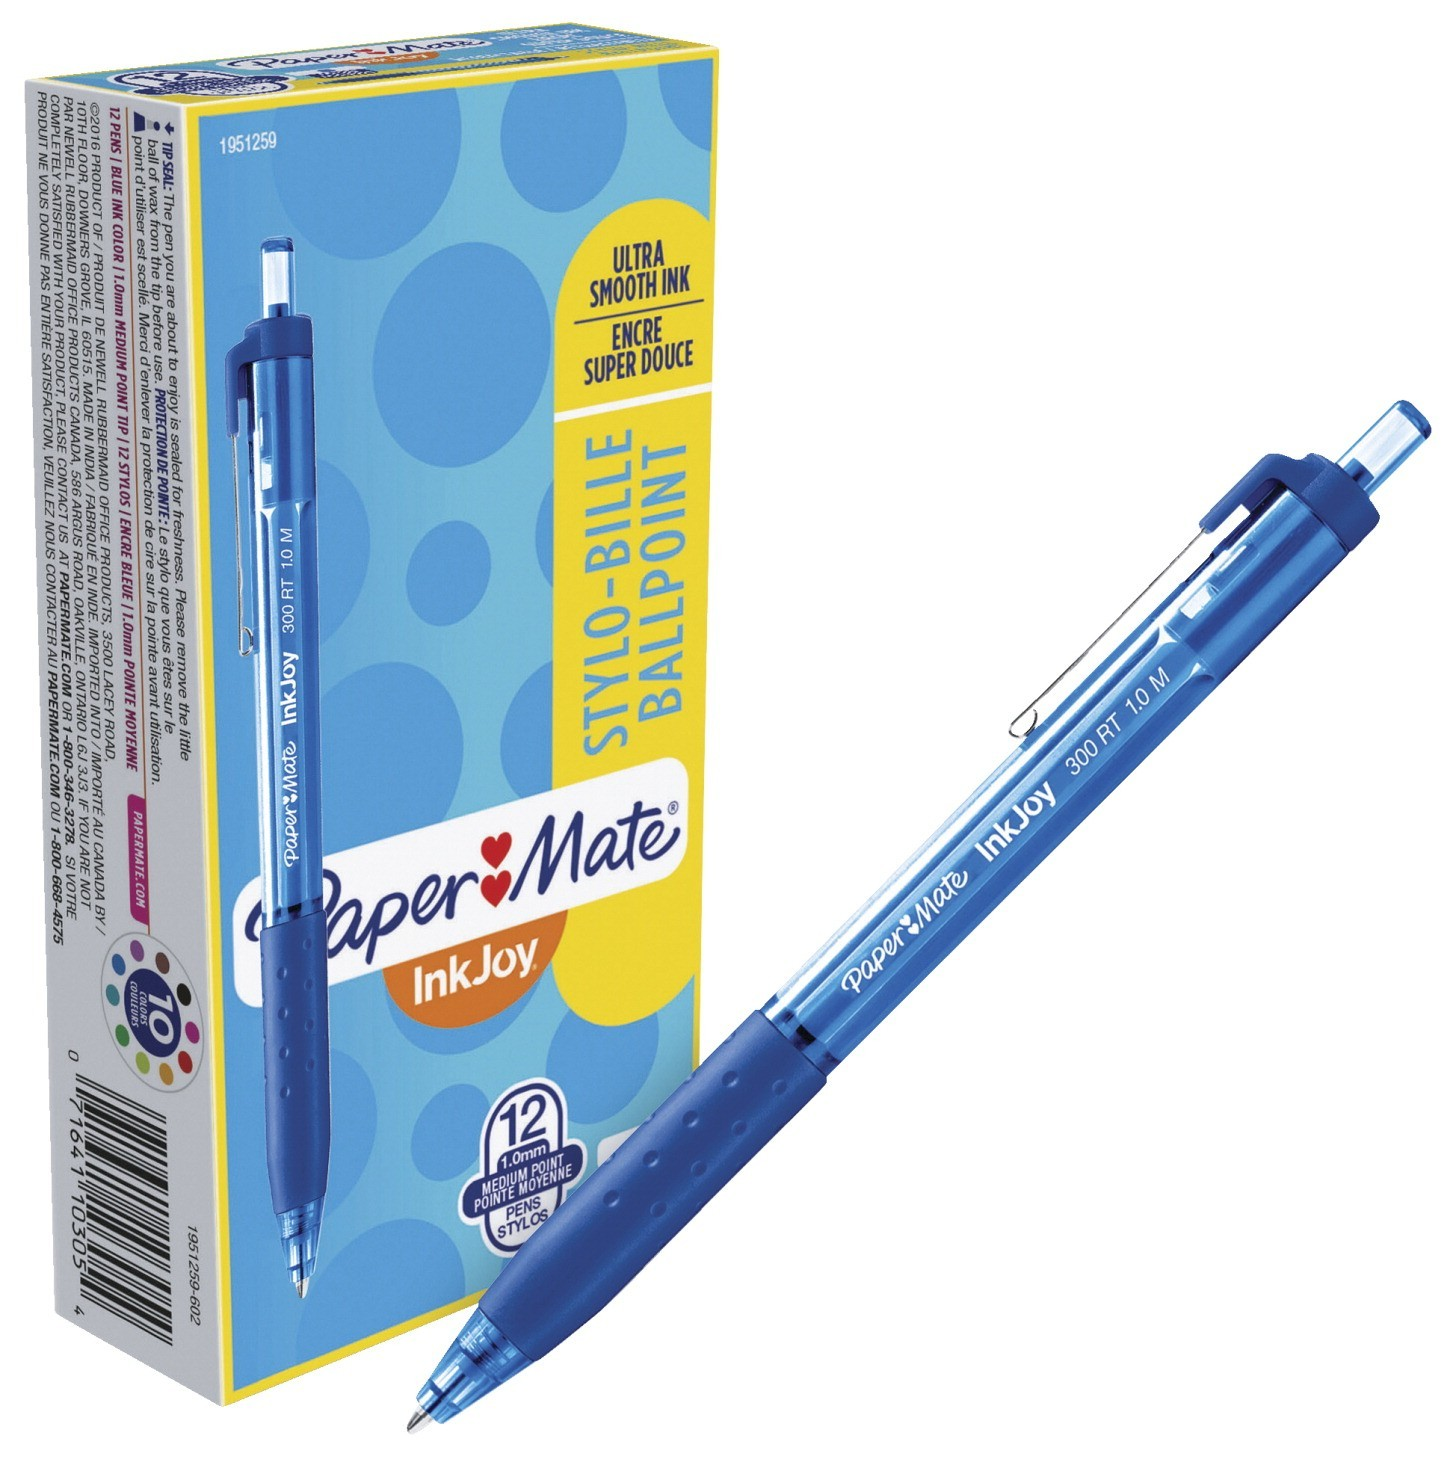 Paper Mate InkJoy Pen, 300 RT Retractable, 1.0MM - 12/Pkg - Blue